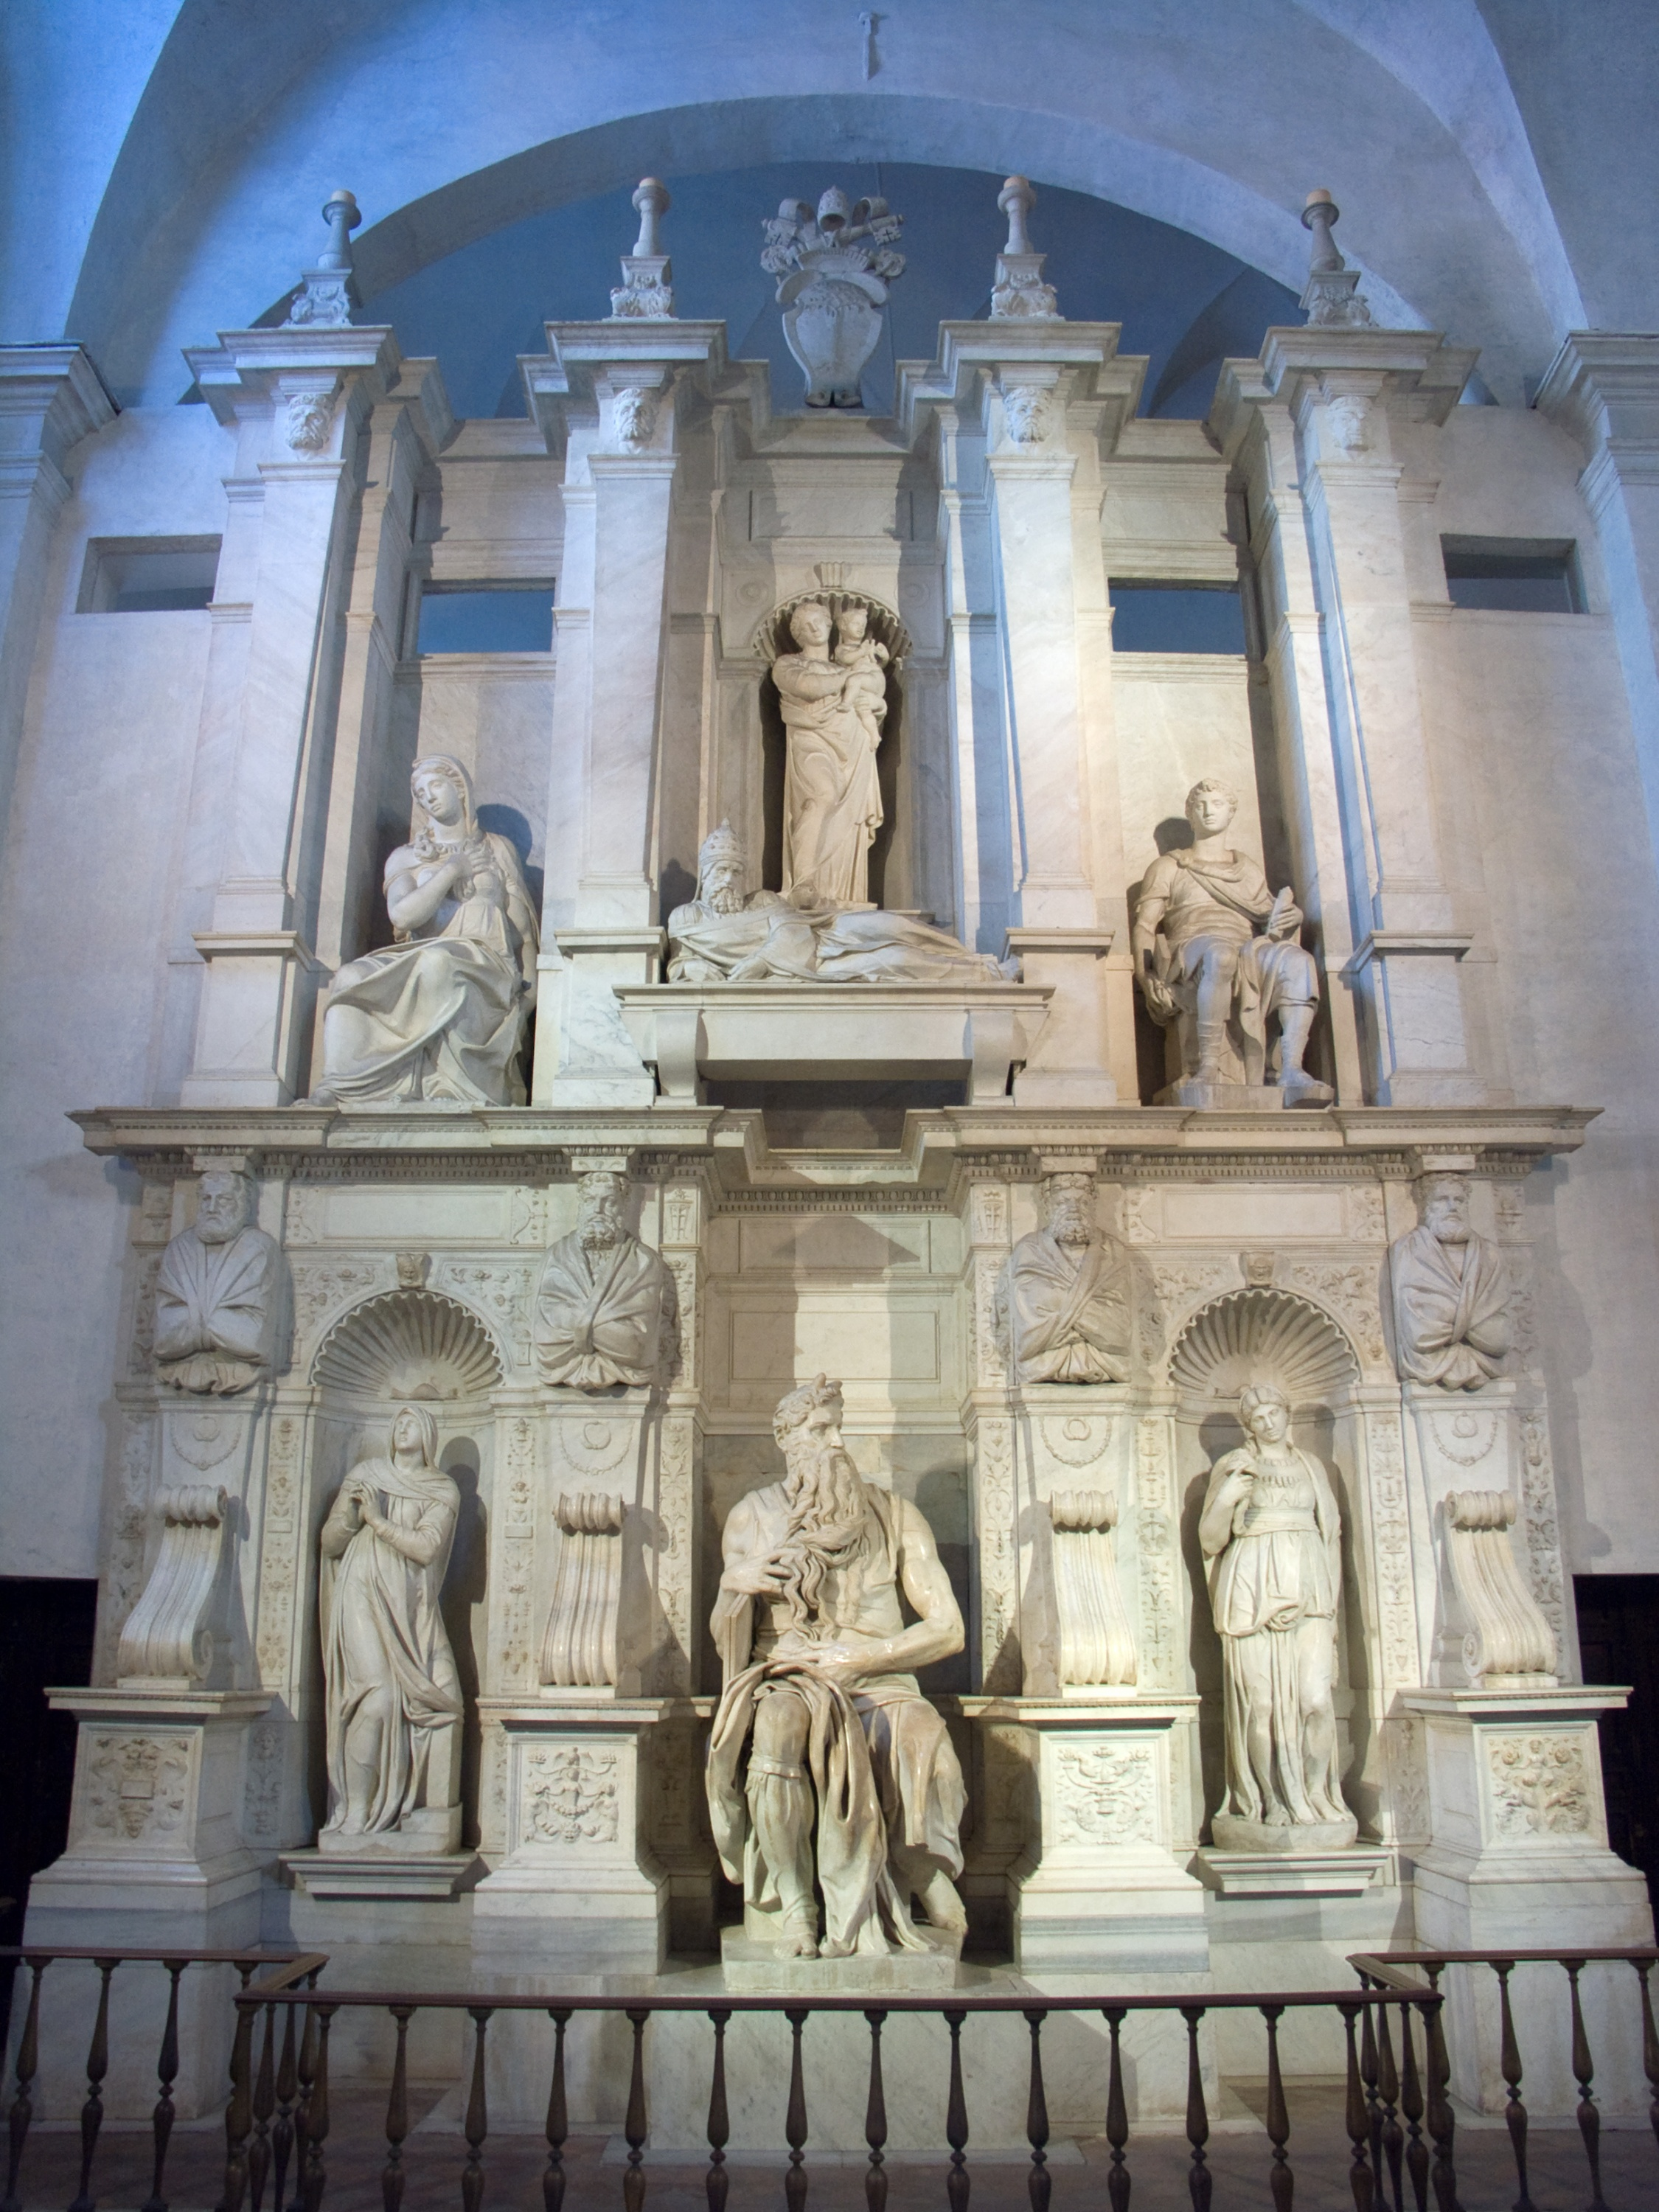 michelangelos tomb projects and inspiration essay Michelangelo's renovation of the capitoline hill: artistic projects had greatly declined michelangelo's tomb for pope julius ii.